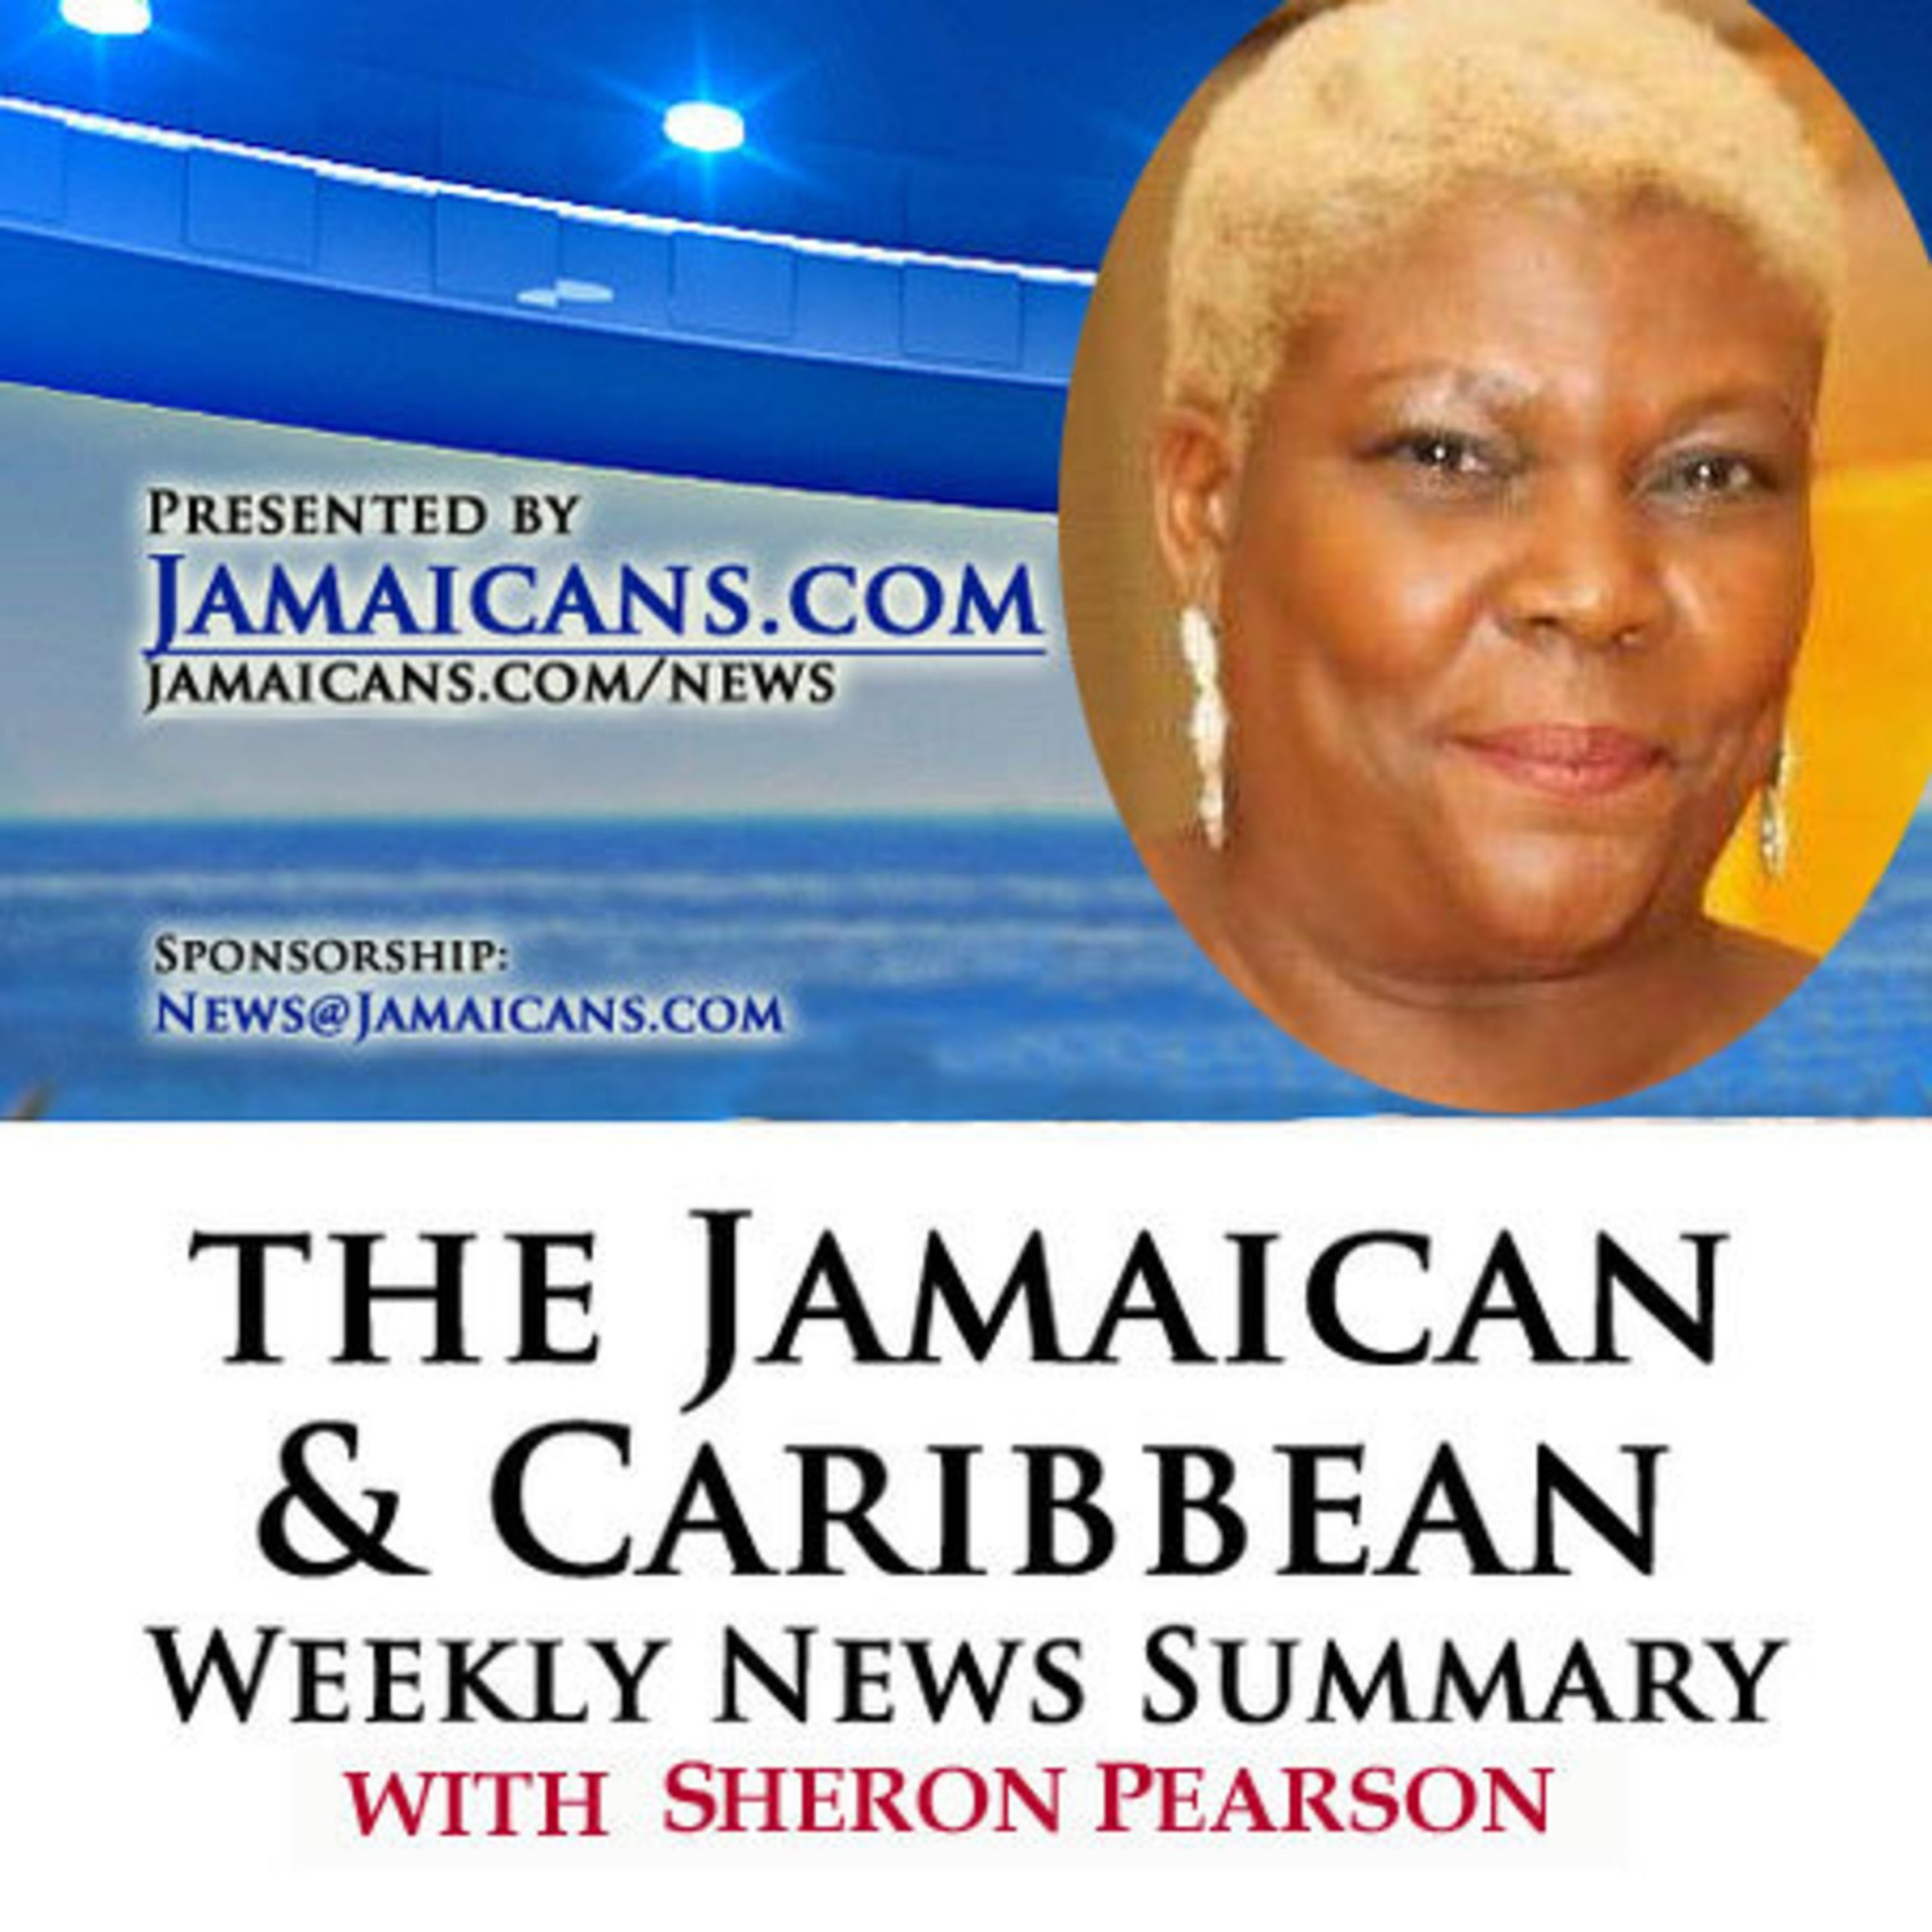 Listen to the Podcast of The Jamaica & Caribbean Weekly News Summary for the week ending June 19, 2020